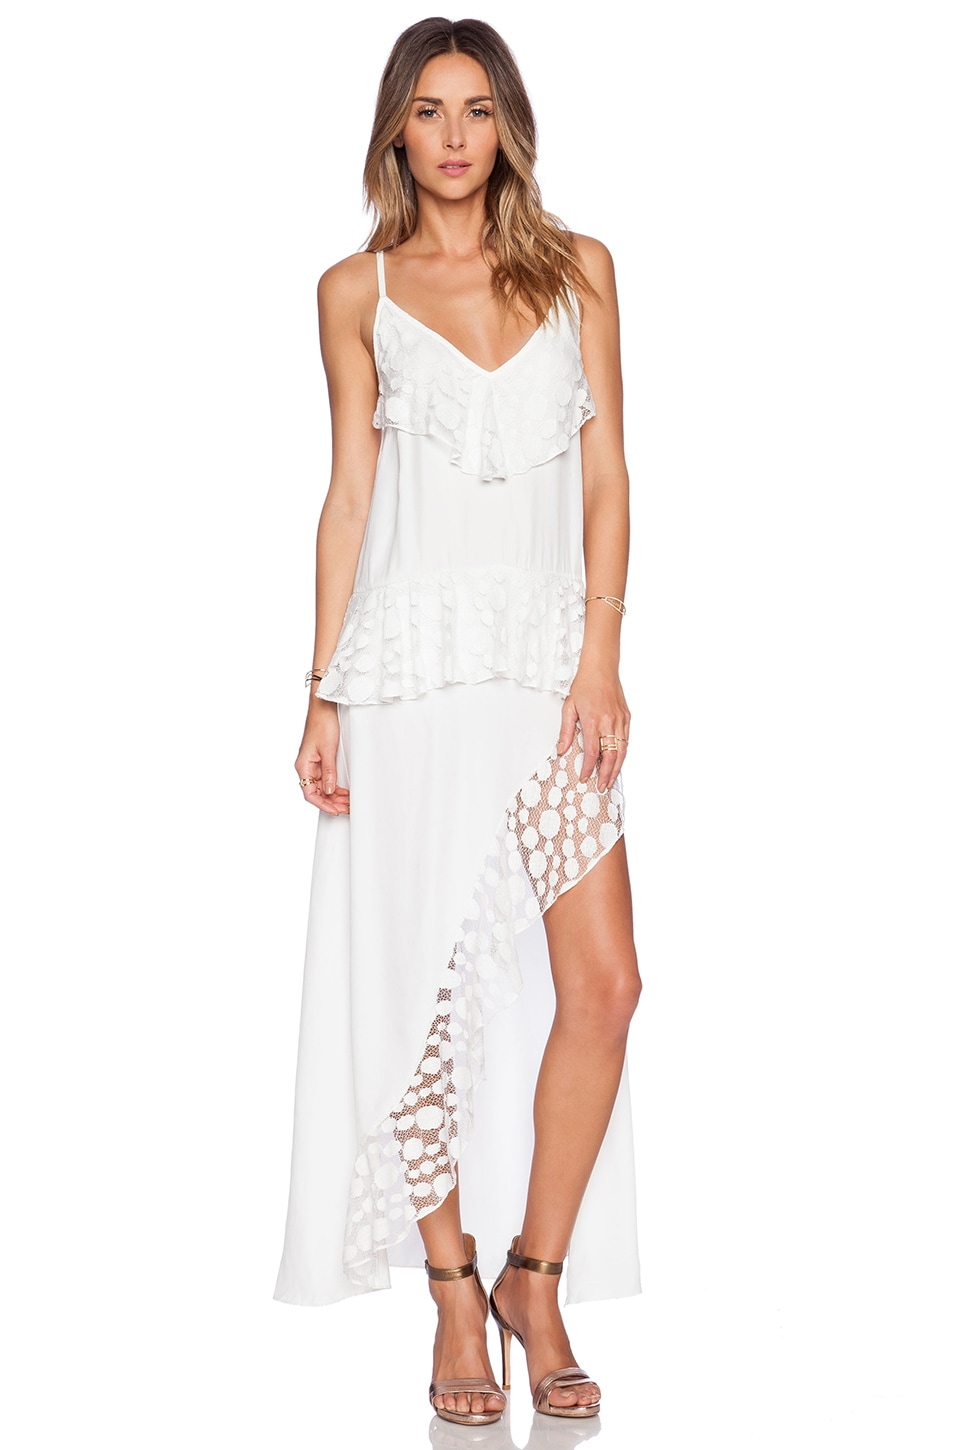 shakuhachi stevie lace trim split dress in white | revolve